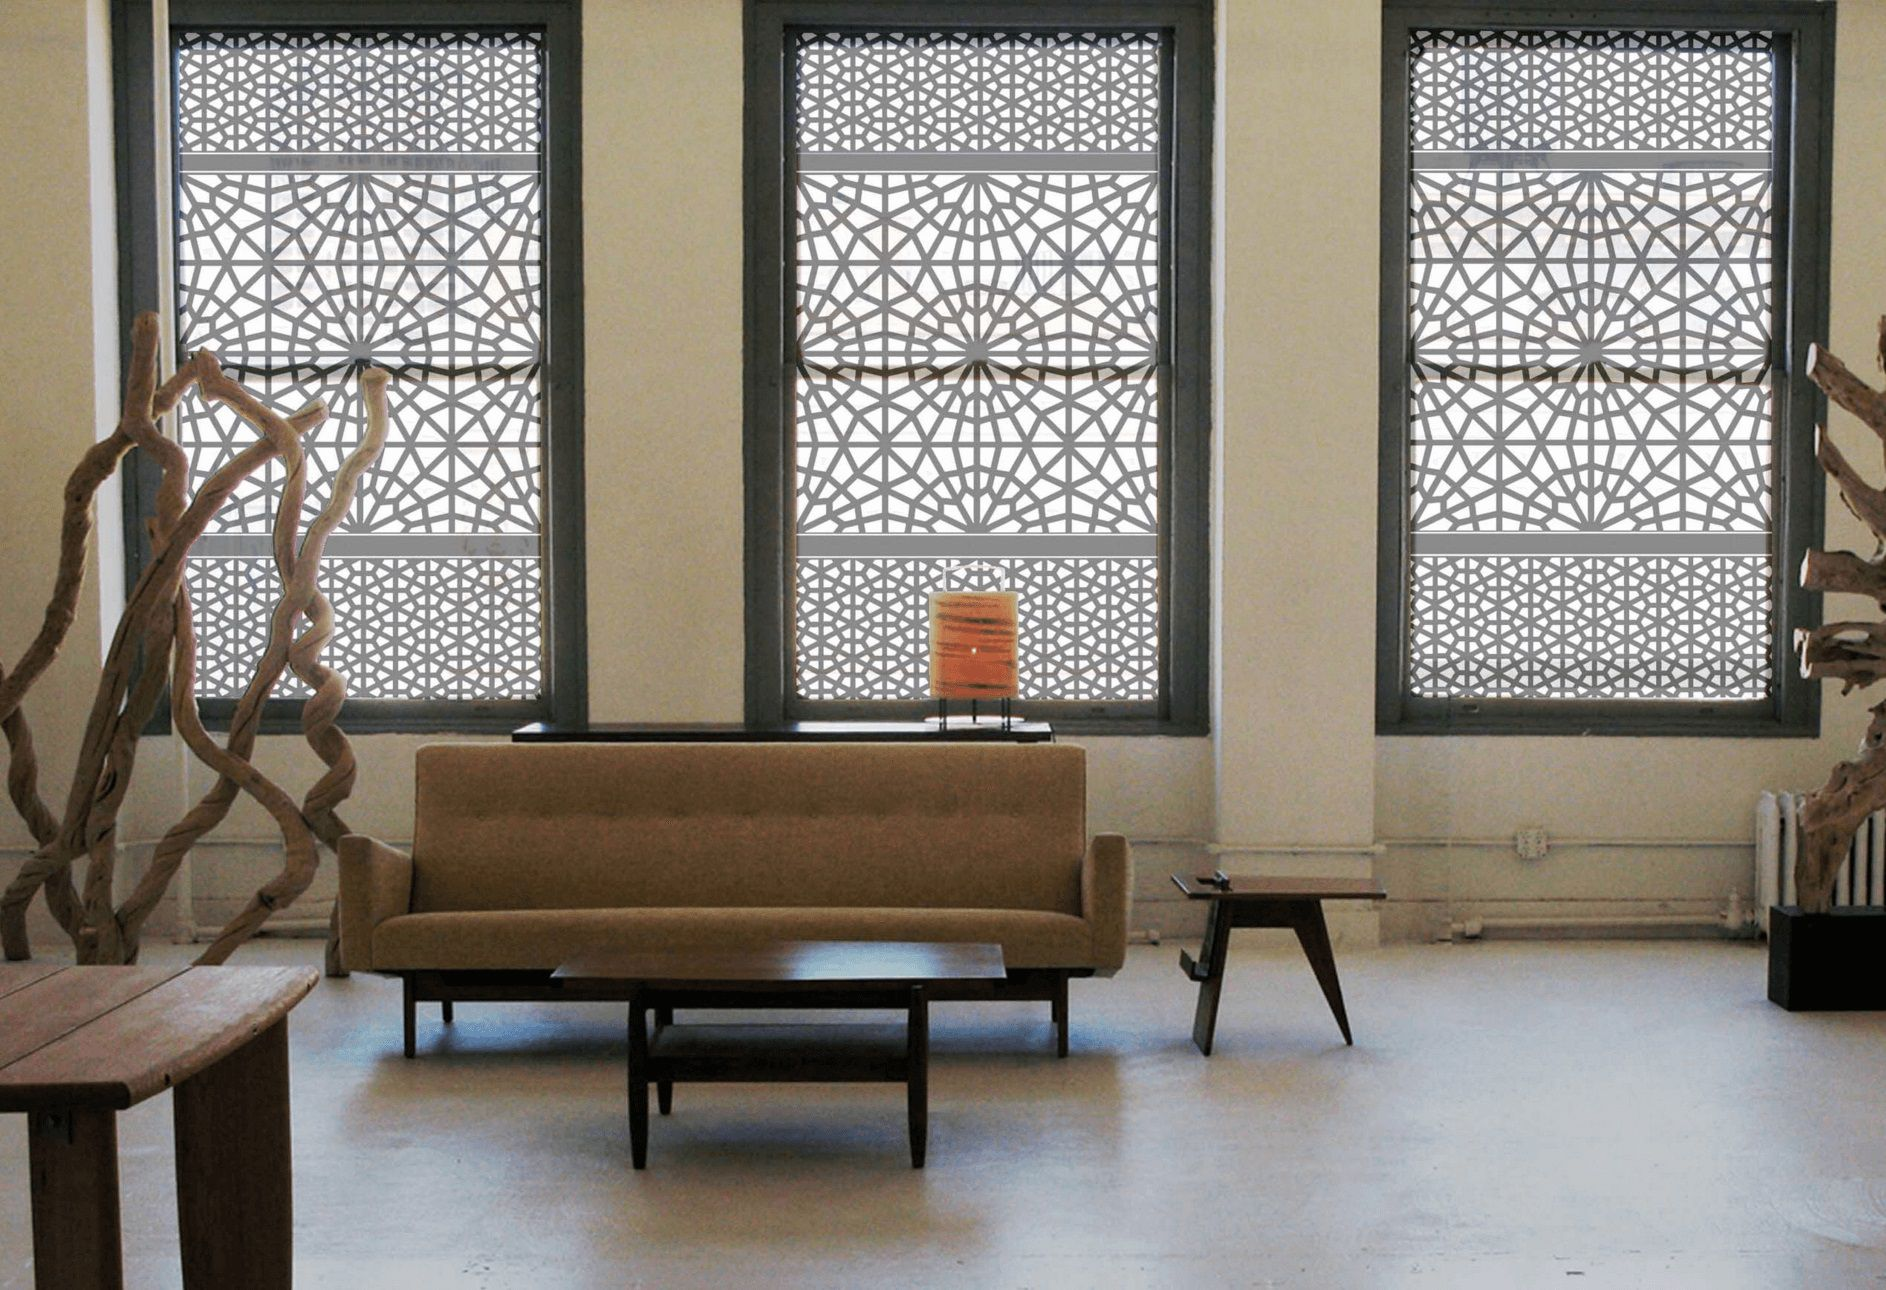 Awesome Window Treatment Idea with Retro Style Patterned Drapery to Improve Interior Decoration